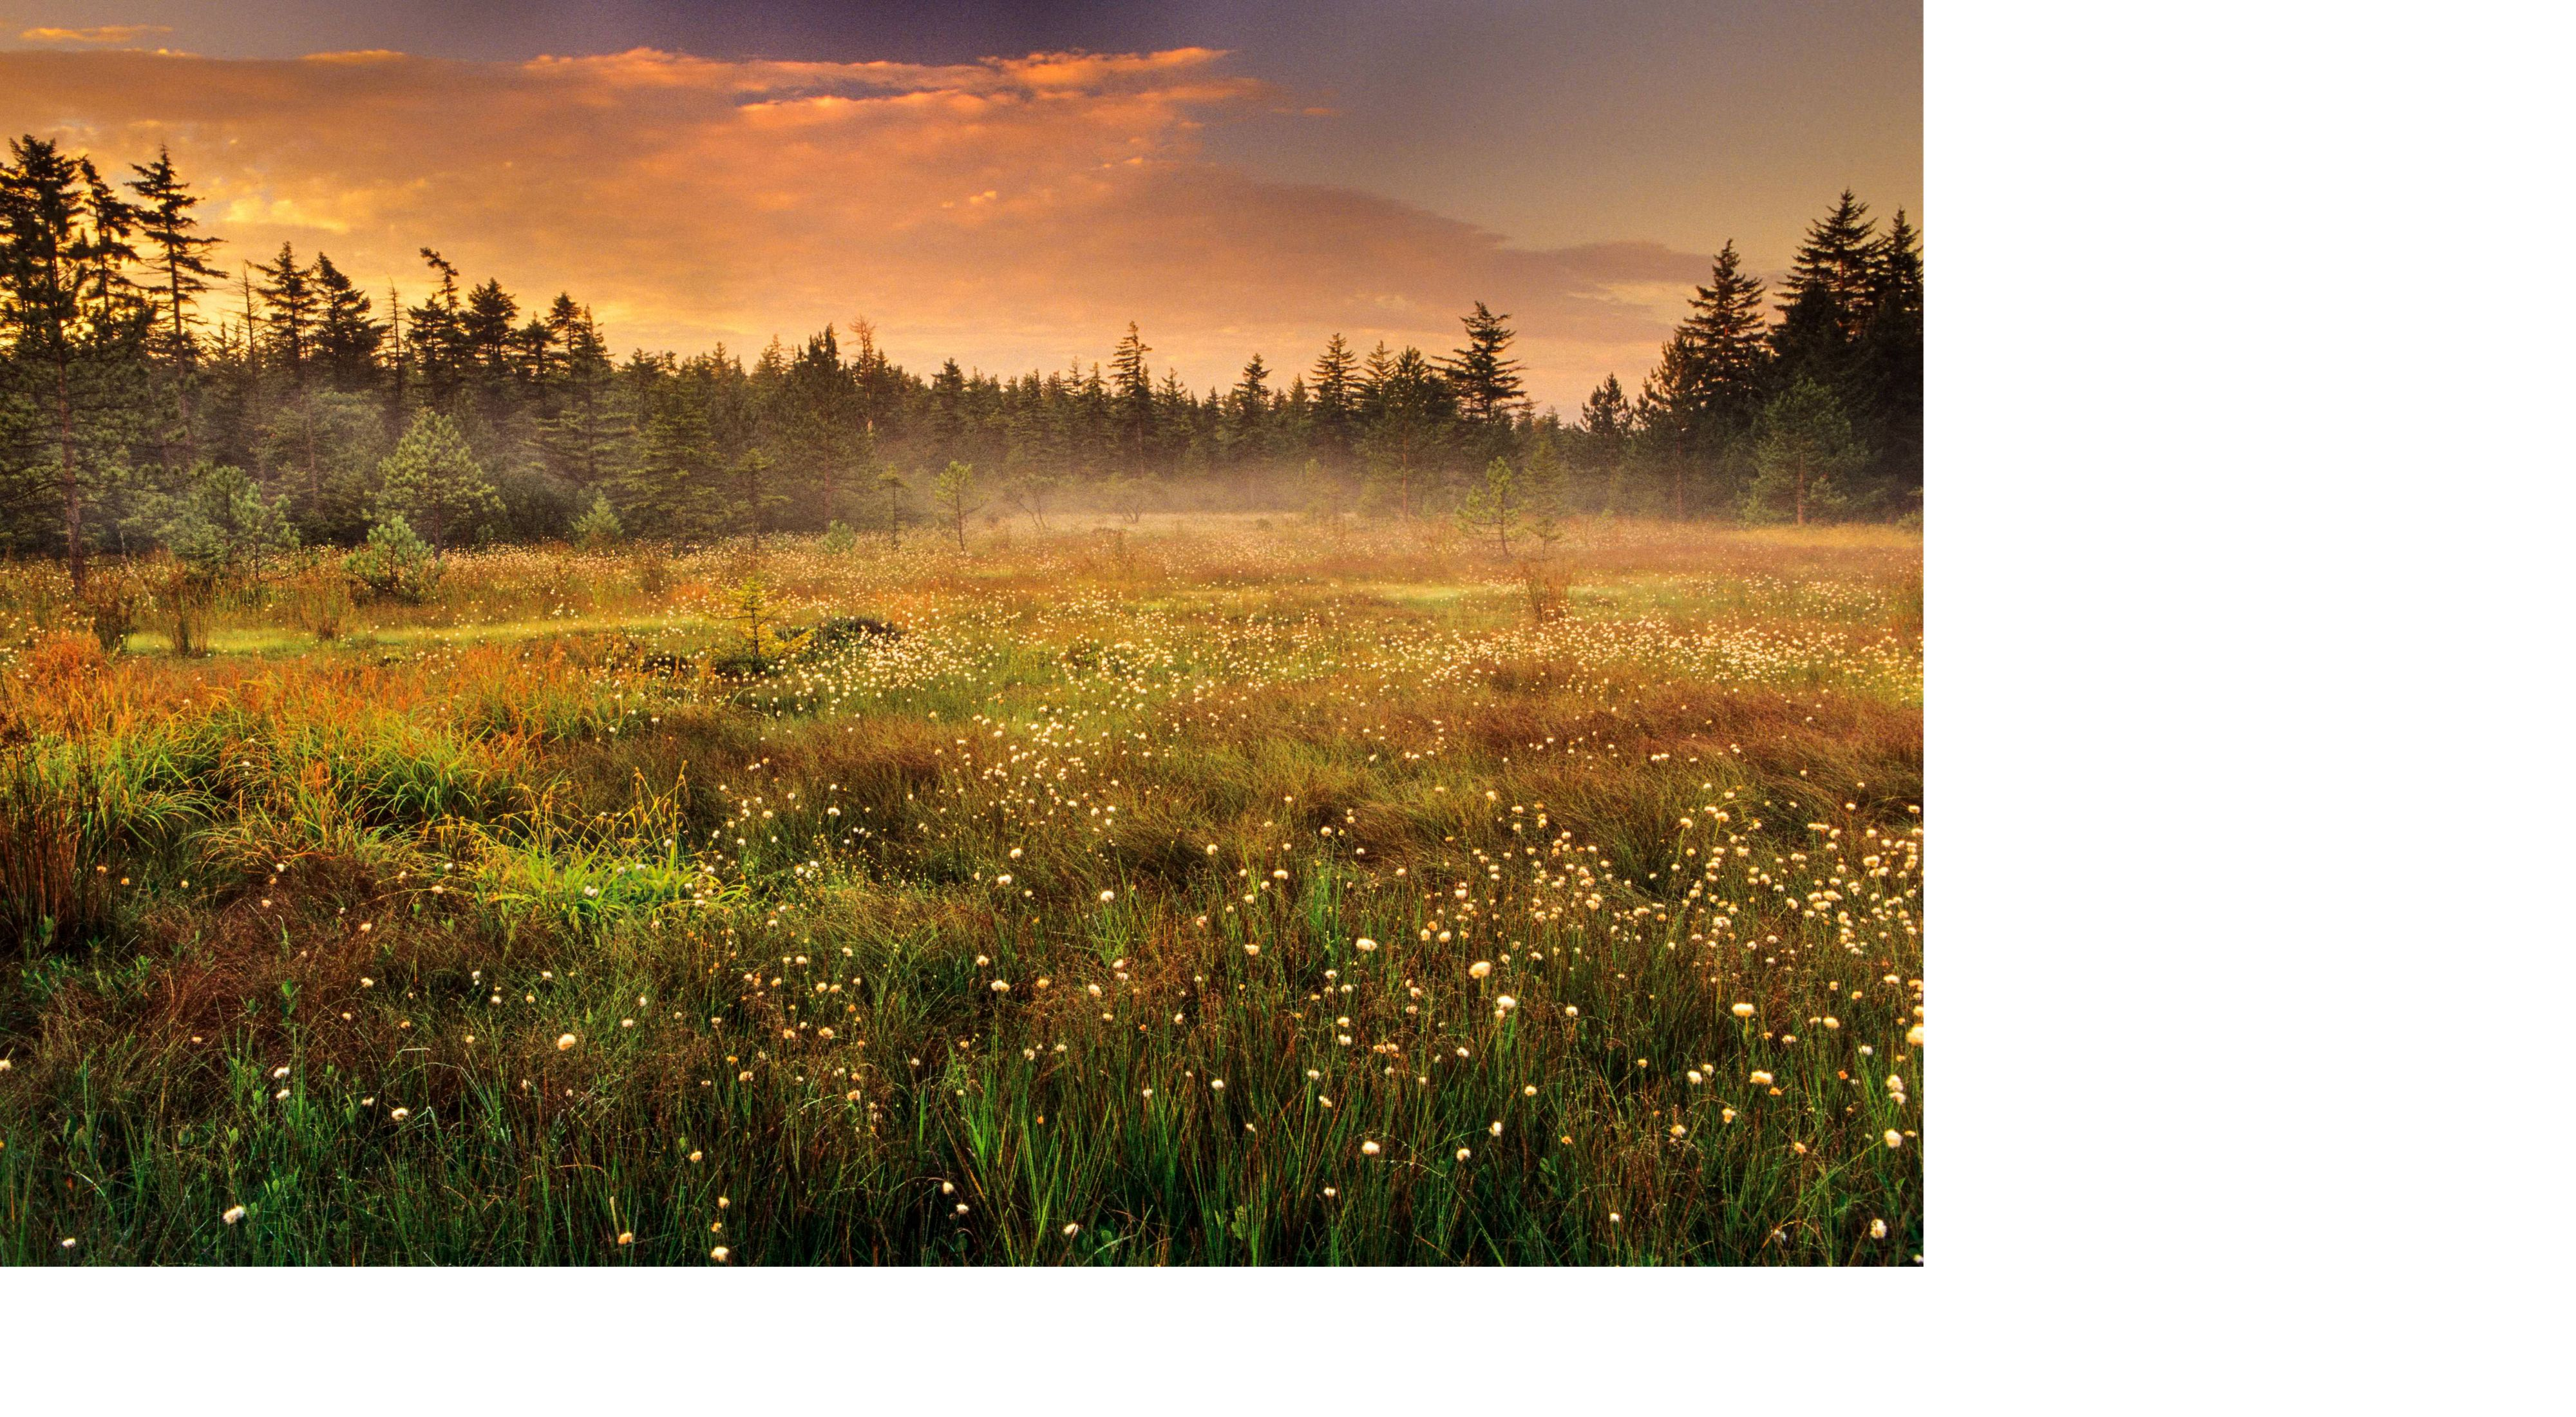 Cotton grass in wetlands at Dolly Sods Scenic Area, Dolly Sods Wilderness, West Virginia.